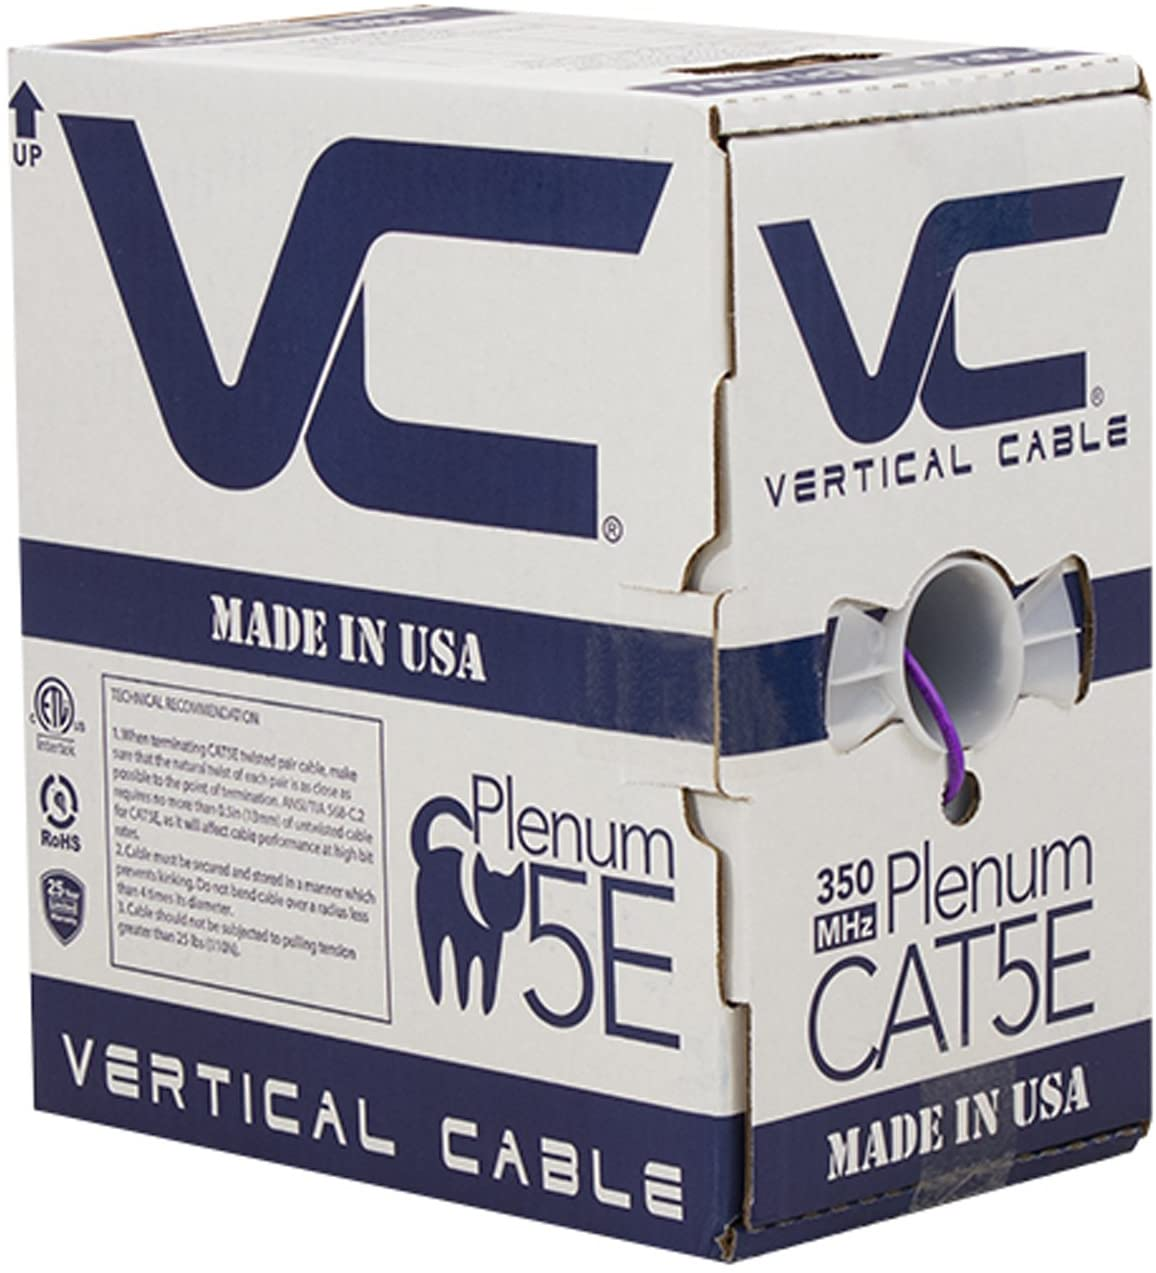 Vertical Cable CAT5E, 350 MHz, UTP, 24AWG, 8C Solid Bare Copper, Plenum, 1000ft, Purple, Bulk Ethernet Cable - Made in USA